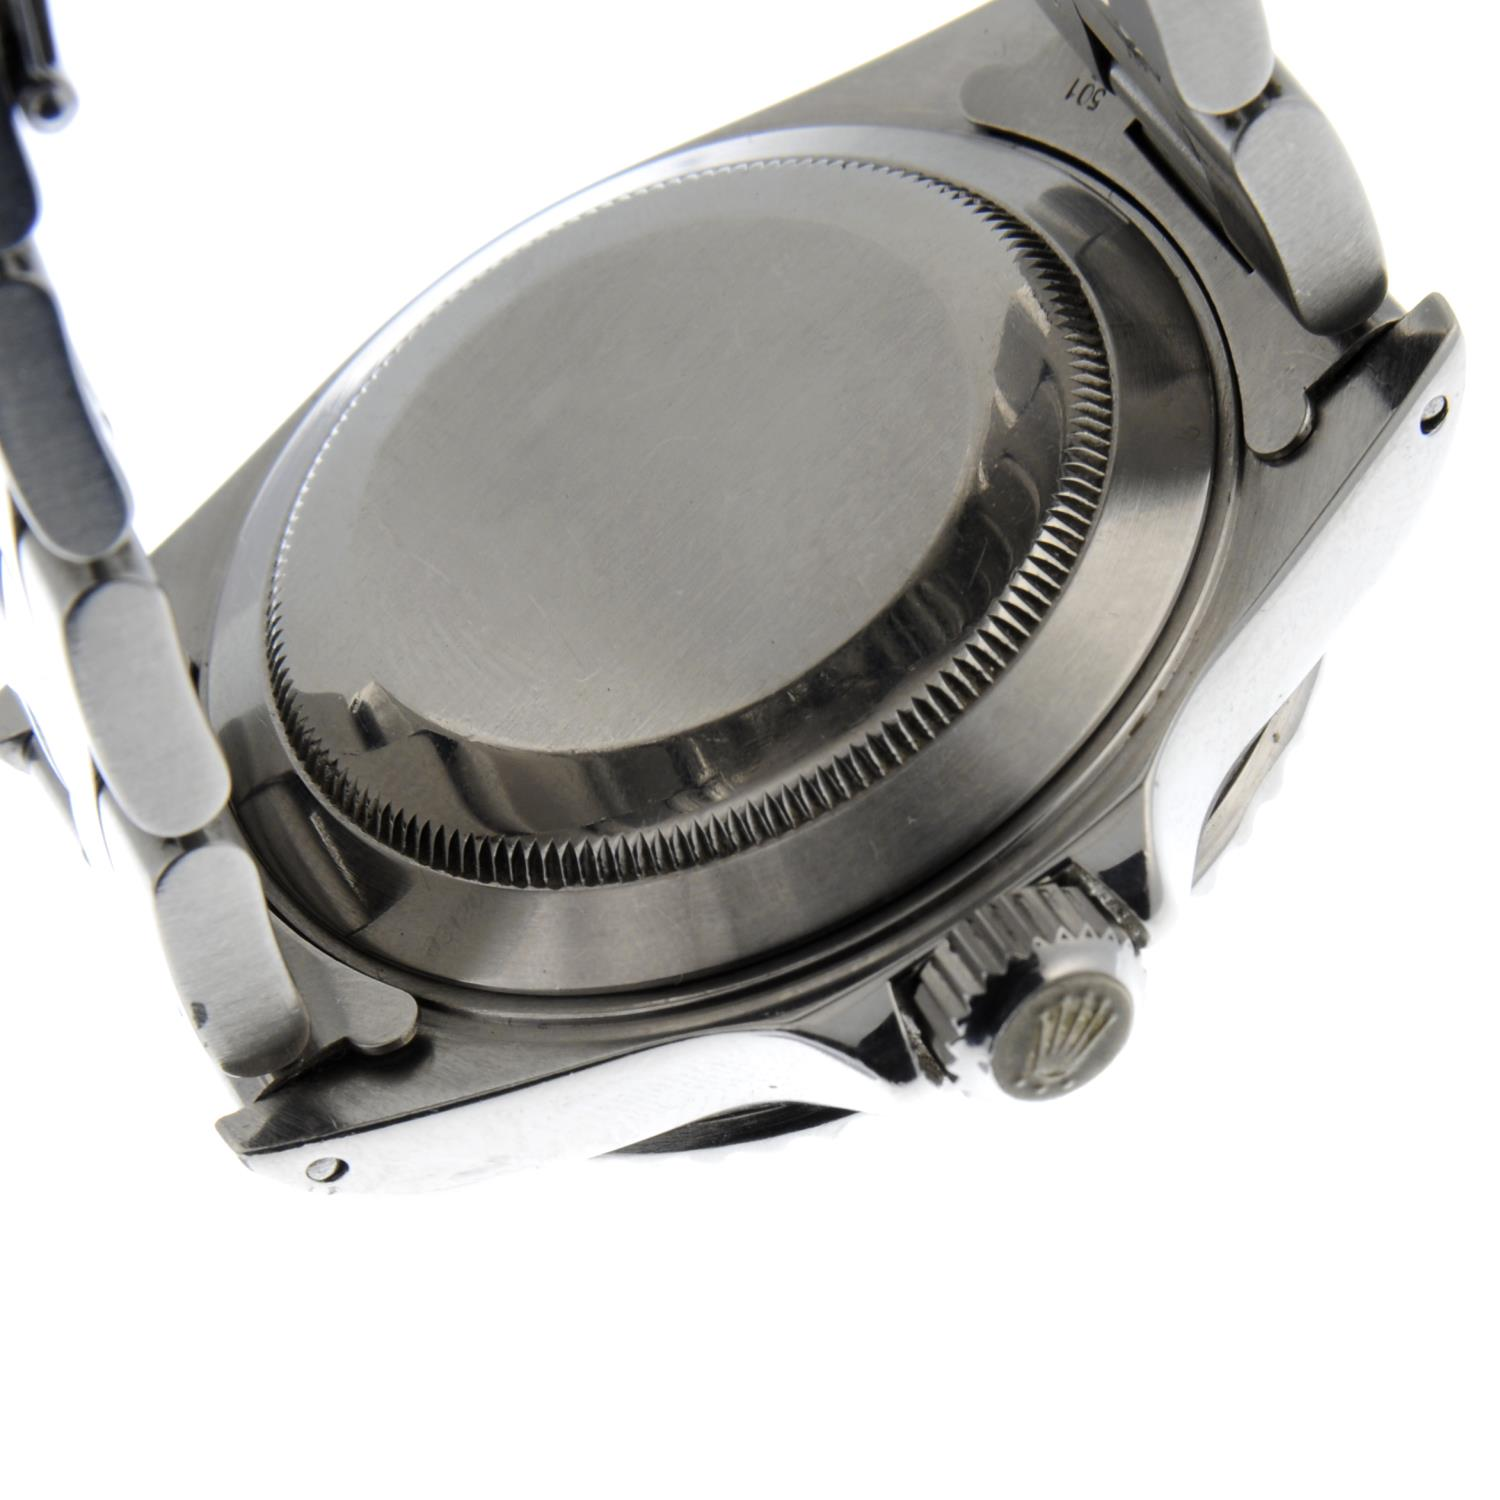 ROLEX - an Oyster Perpetual Date Submariner bracelet watch. - Image 2 of 5